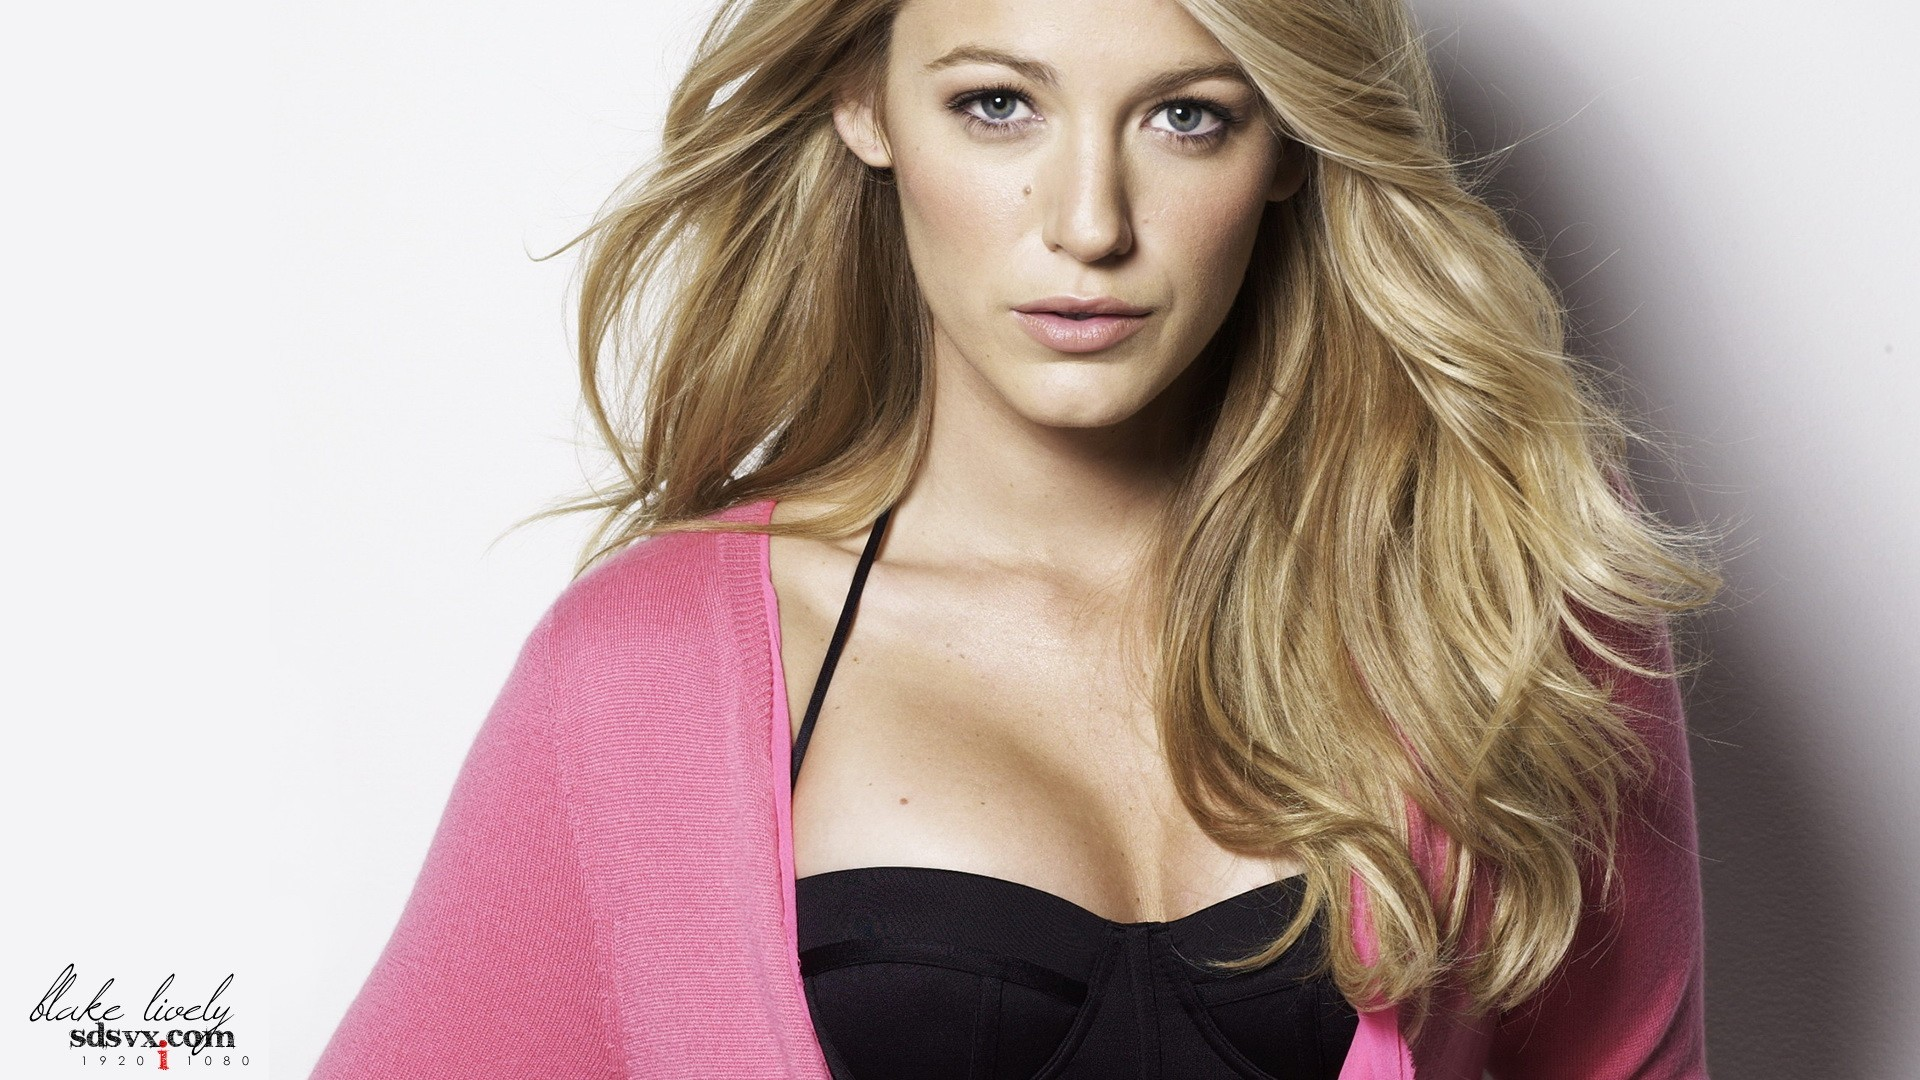 blake lively wallpapers ·①